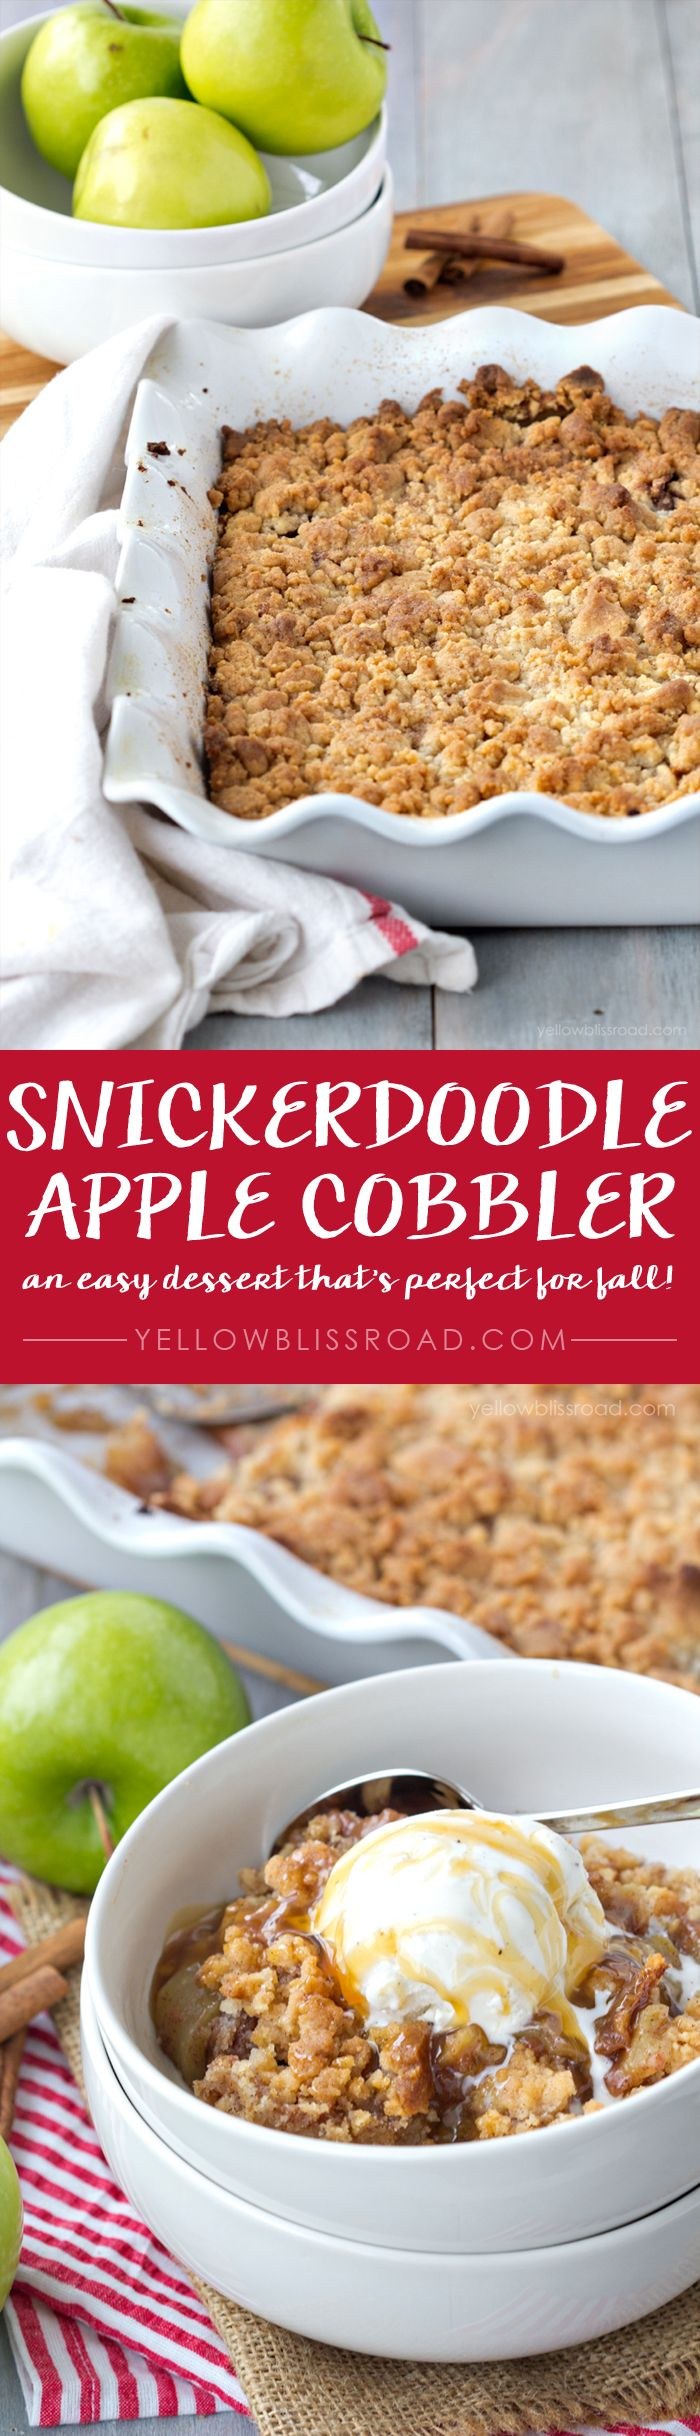 Snickerdoodle Apple Cobbler Recipe Recipe Few